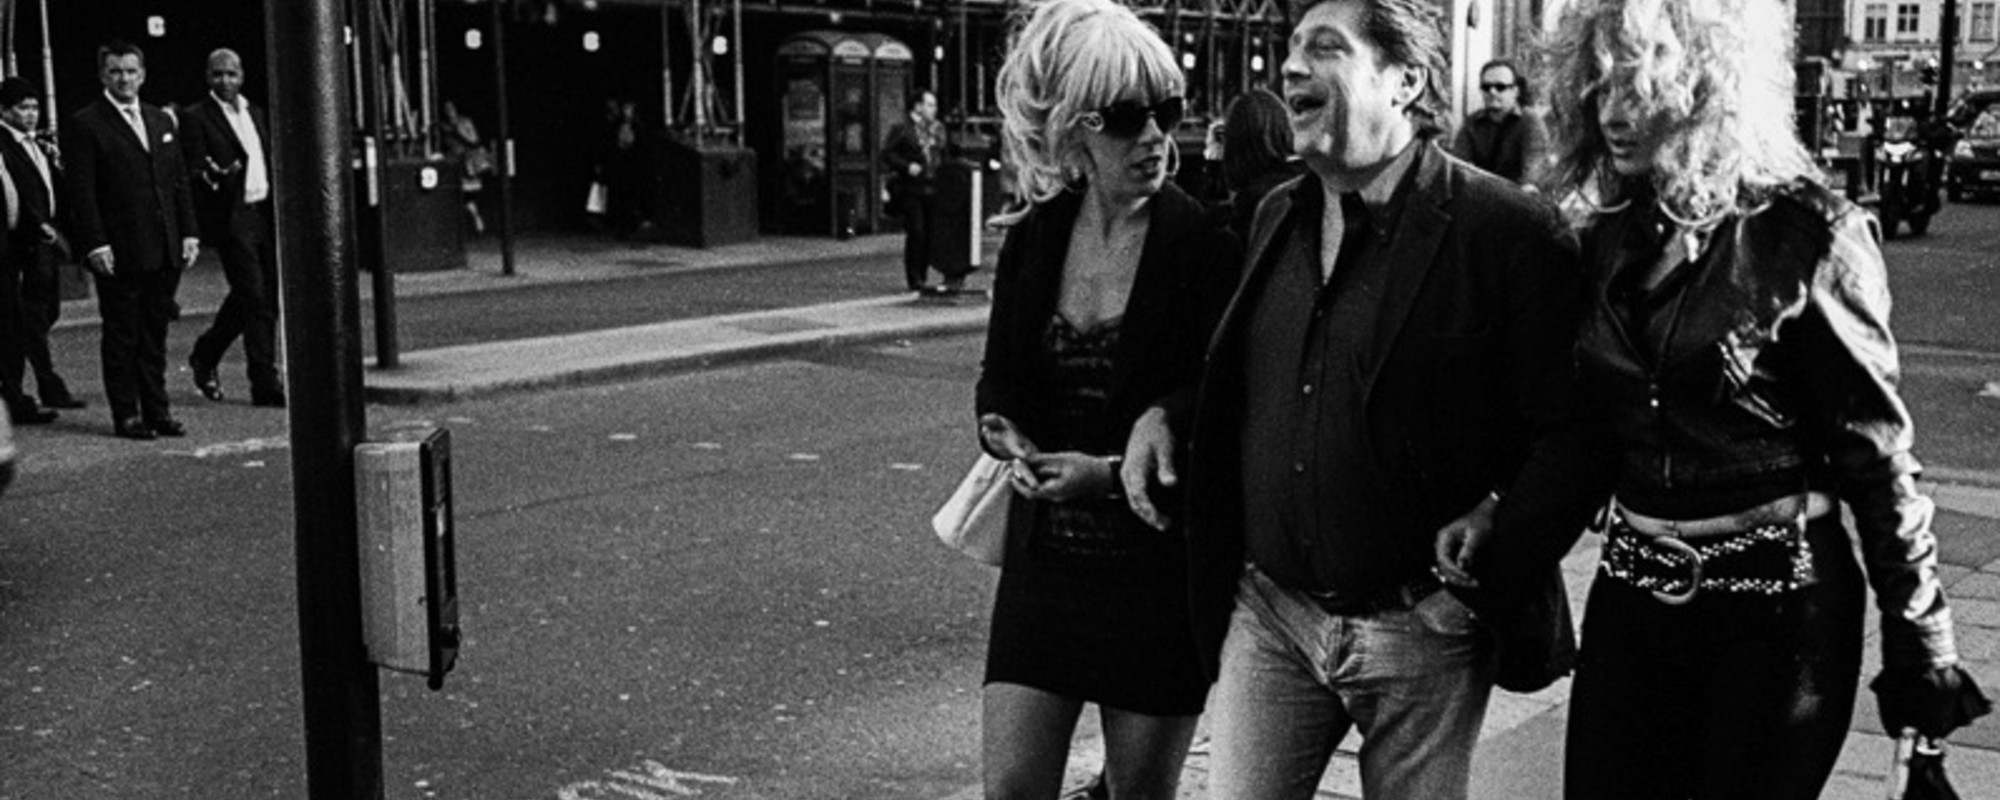 Fred Bonatto Takes Beautiful Photos on the Streets of London